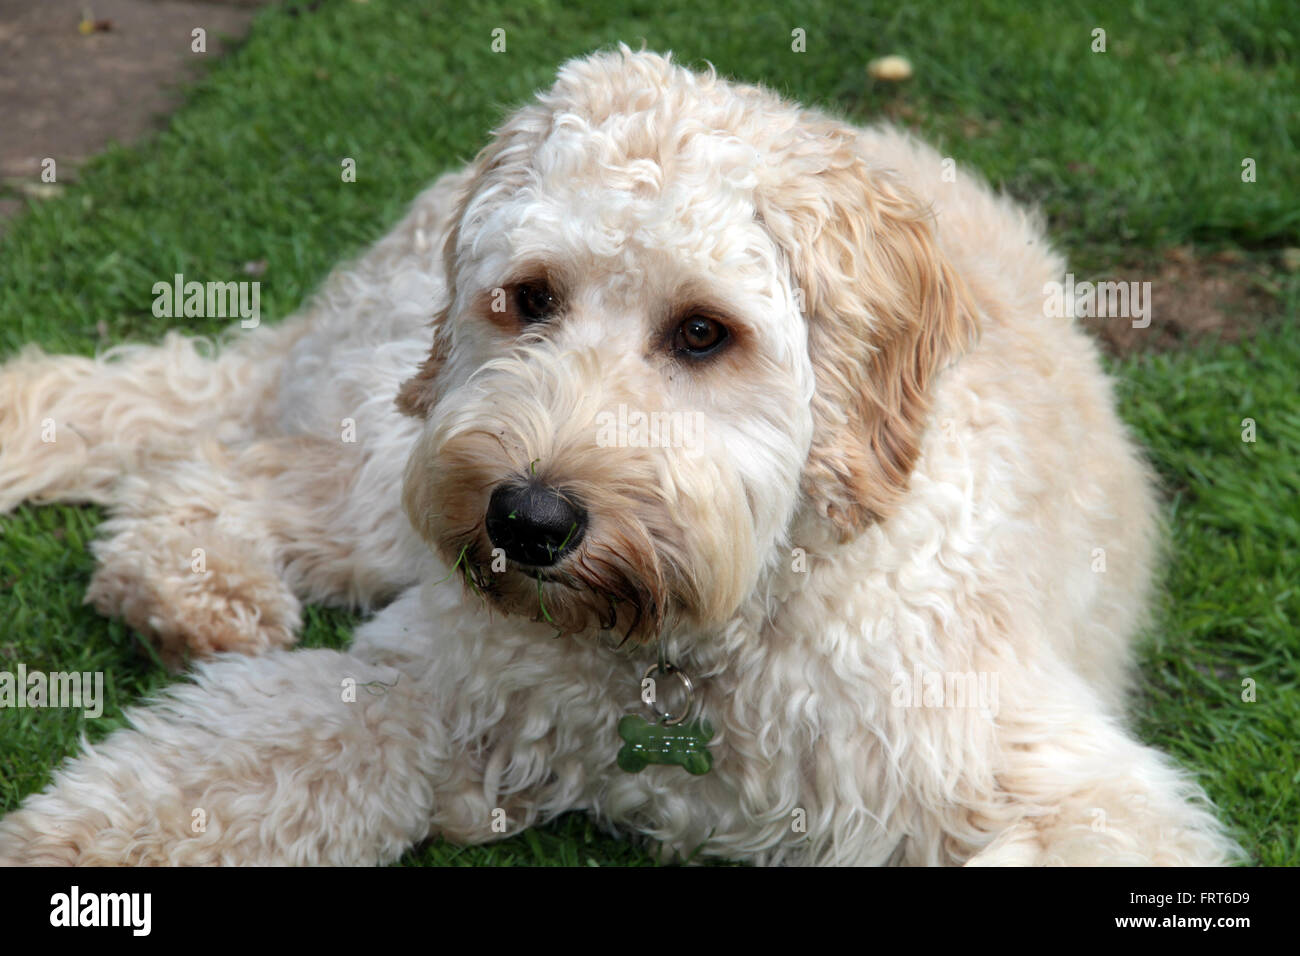 Goldendoodle lying on grass looking at the camera - Stock Image